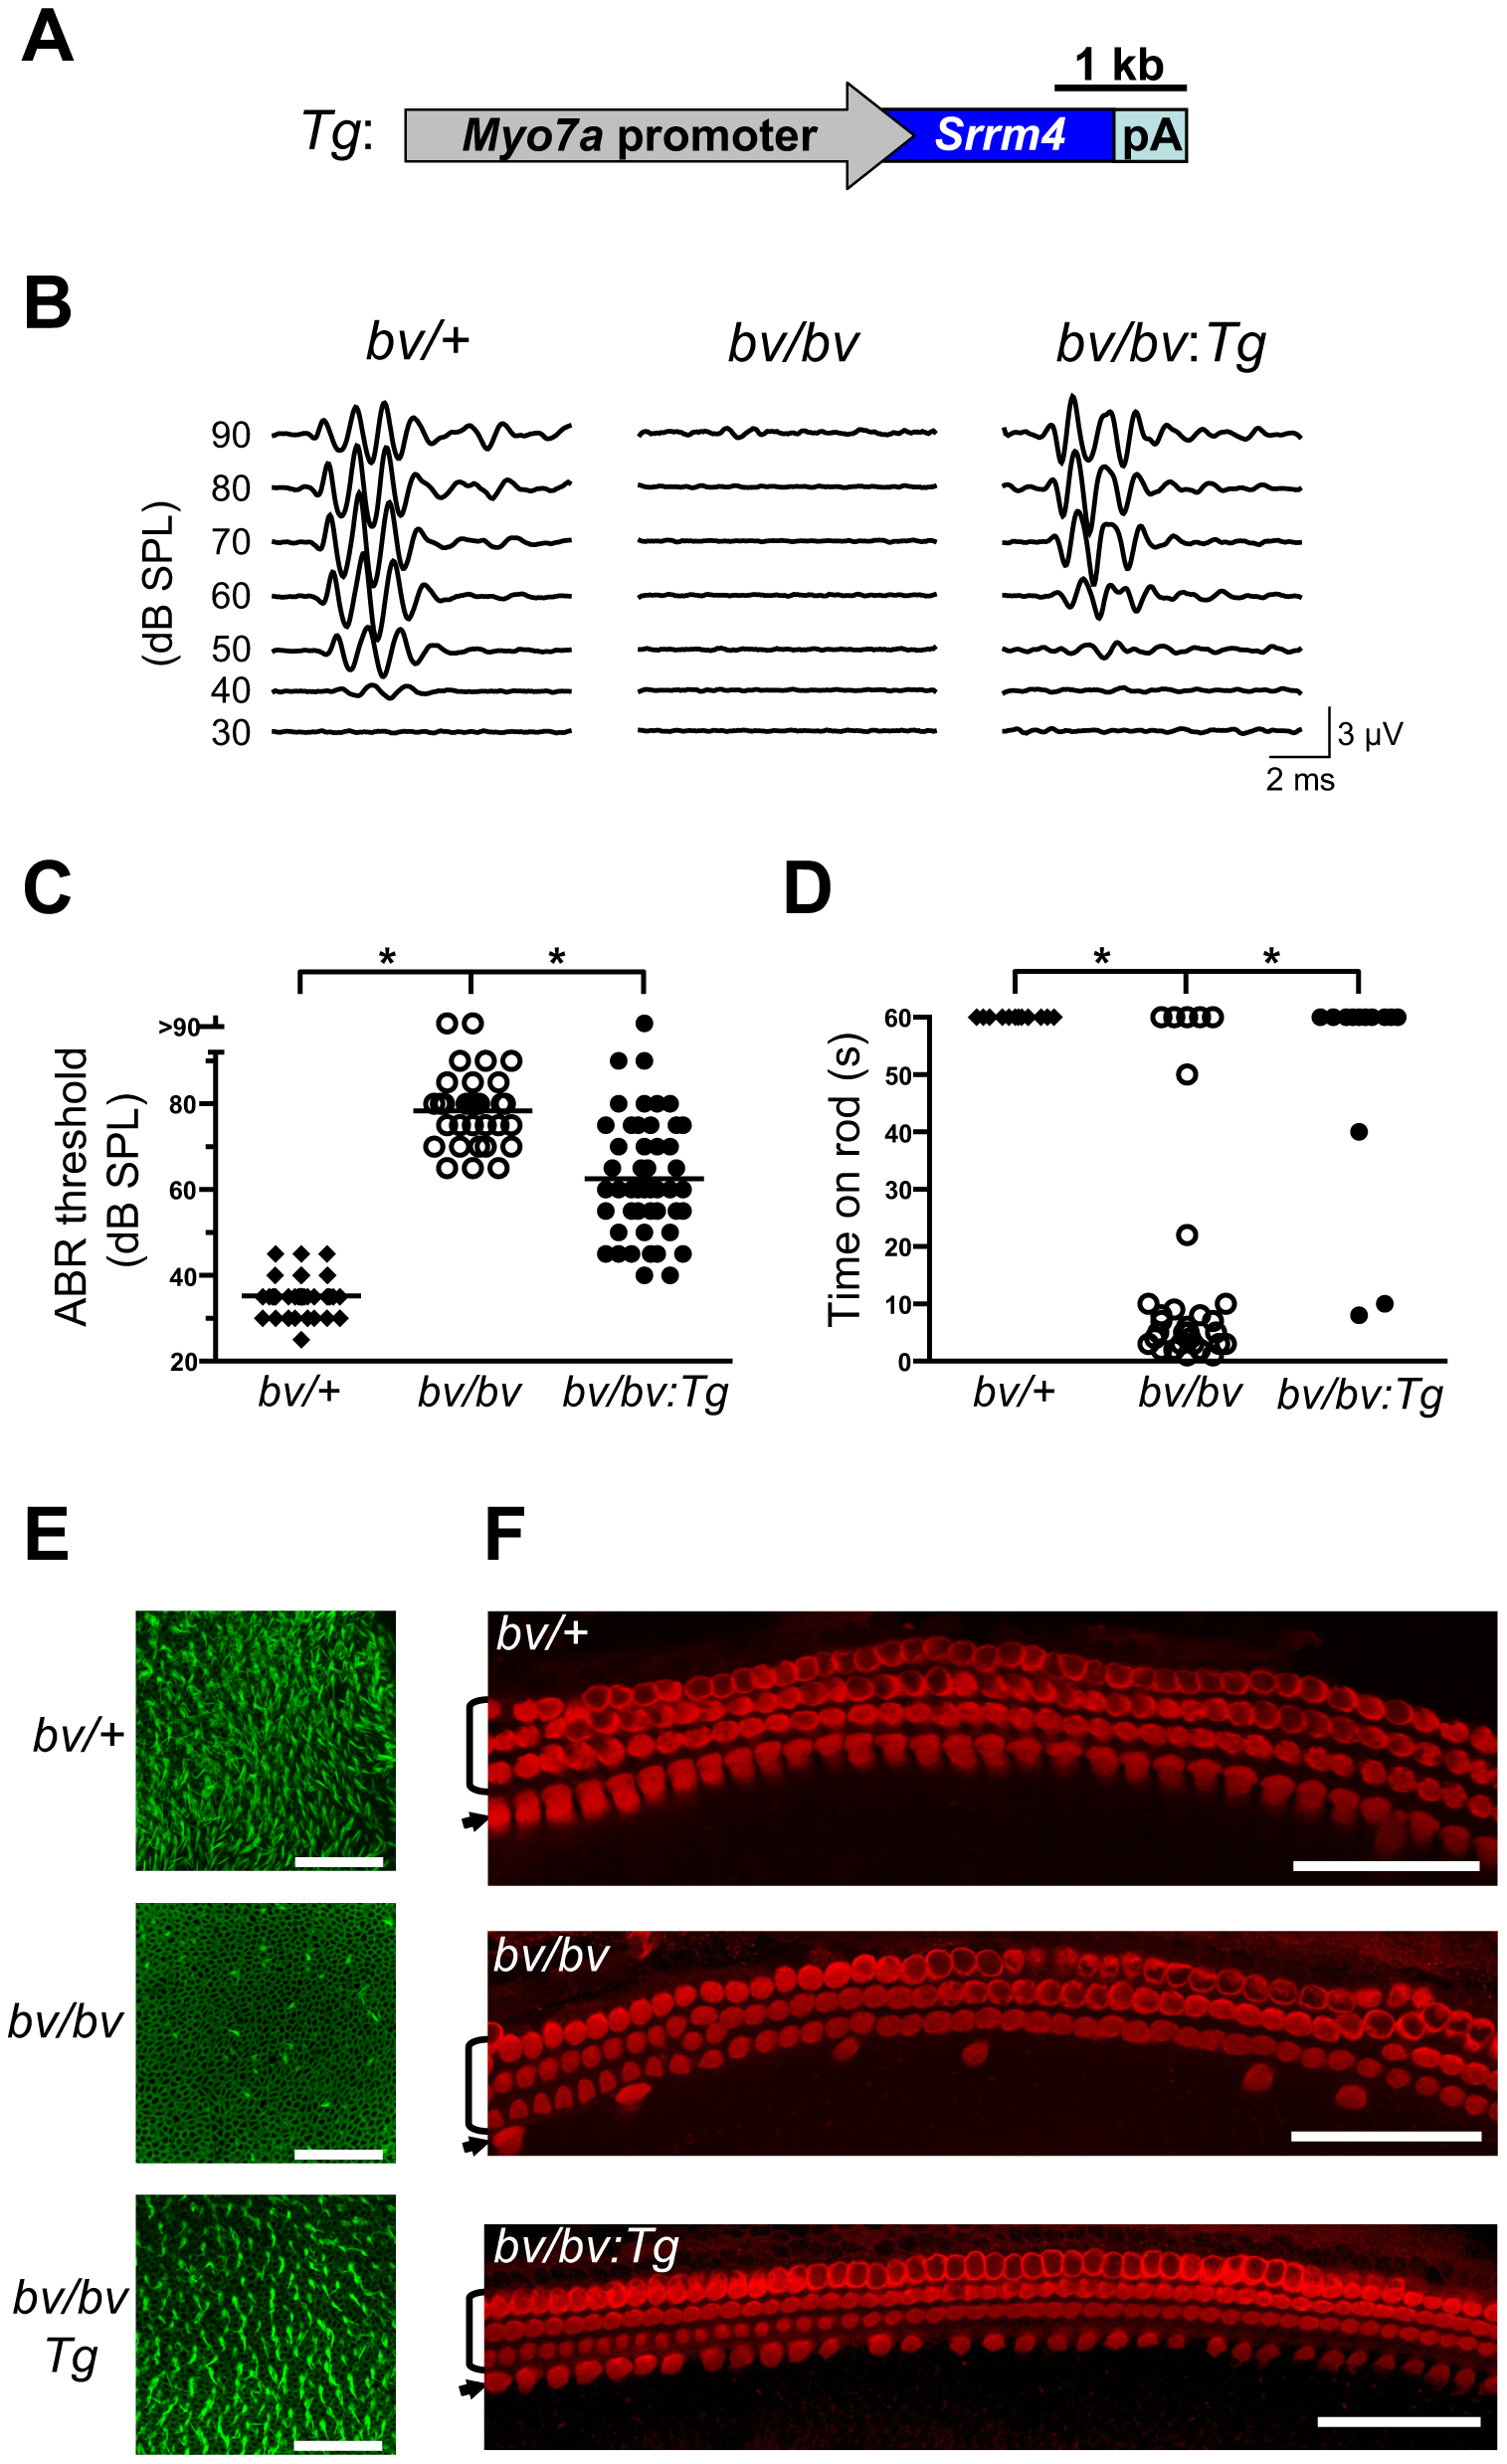 The bv phenotype is rescued by hair-cell targeted expression of an <i>Srrm4</i> transgene.